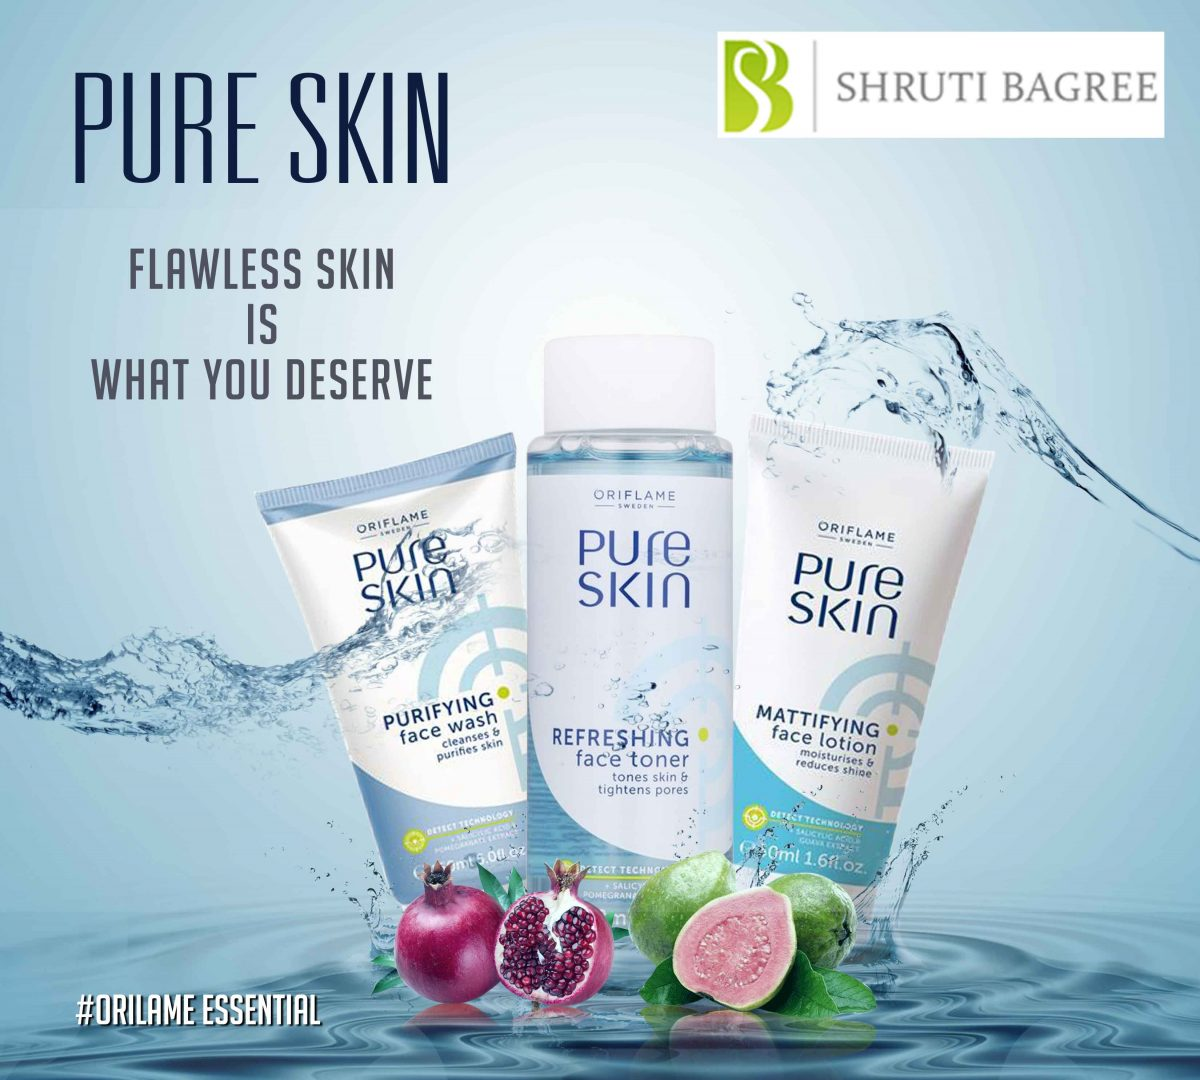 Oriflame's Pure Skin Care Daily Range is worth to buy